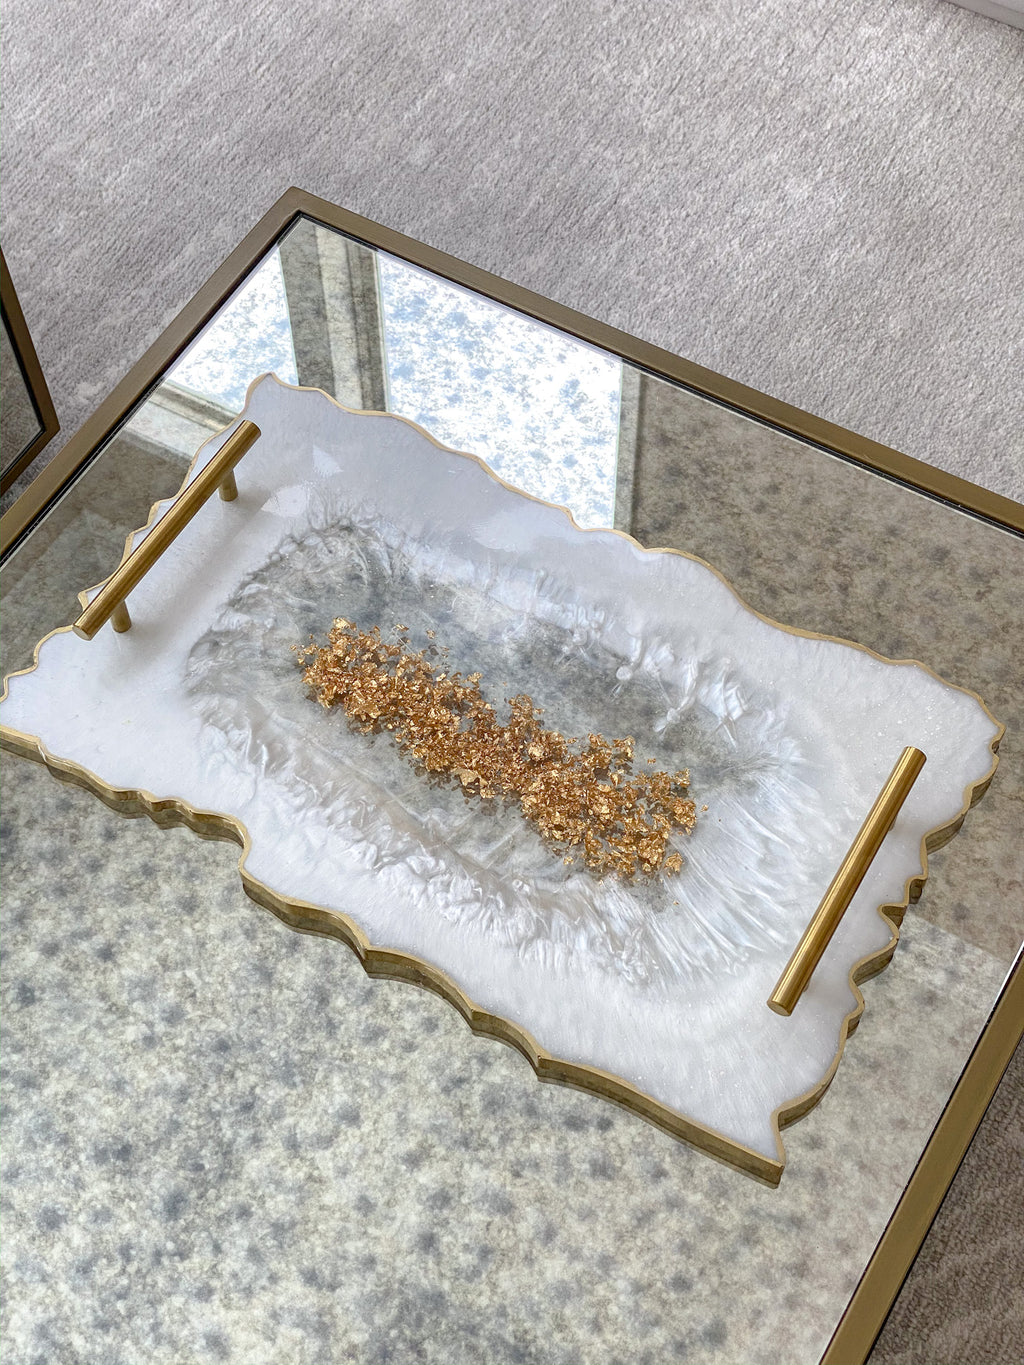 Gold Leaf and White Resin Tray-Inspire Me! Home Decor